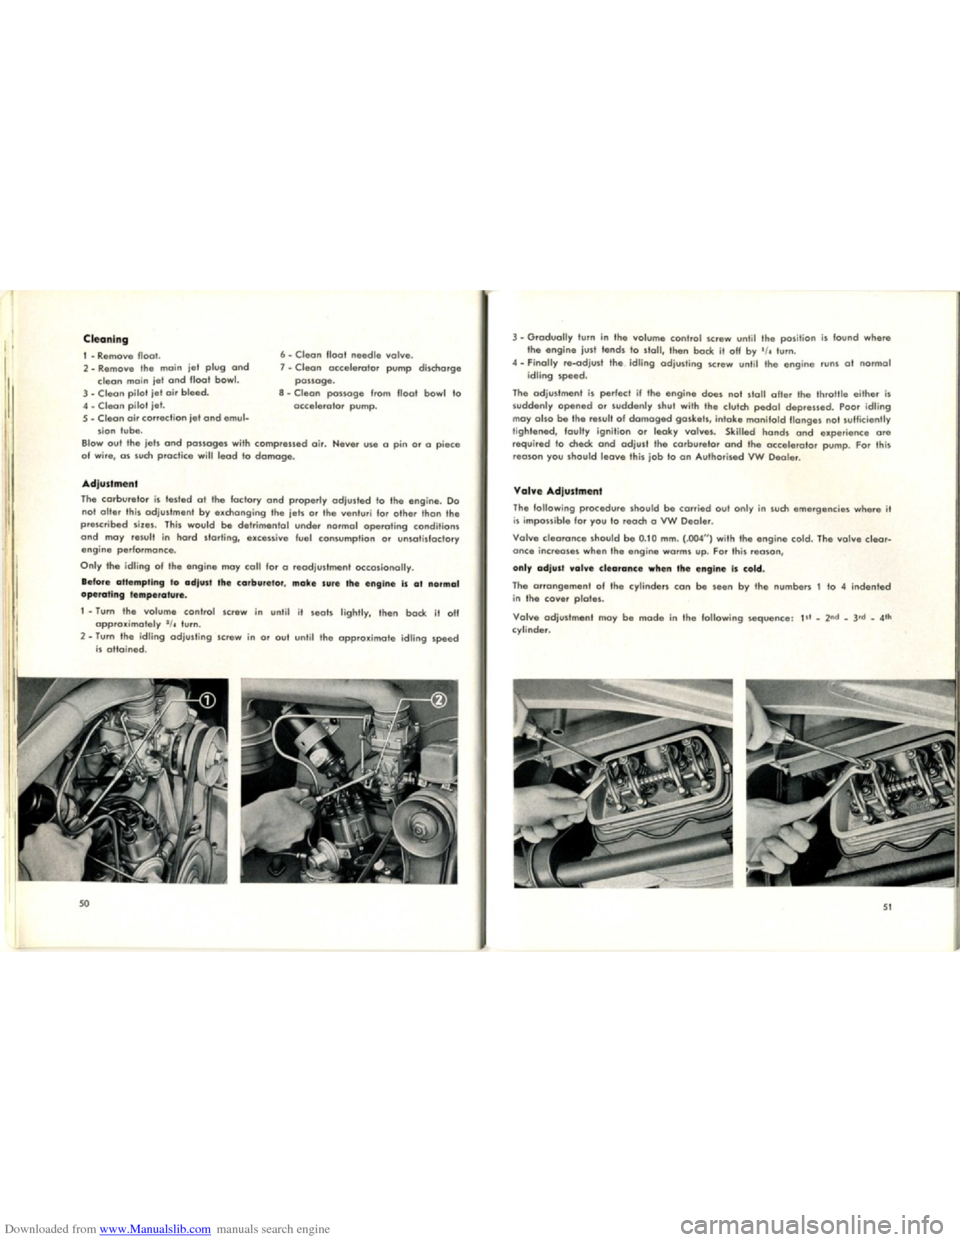 VOLKSWAGEN KARMANN GHIA 1958 1.G Owners Manual, Page 27